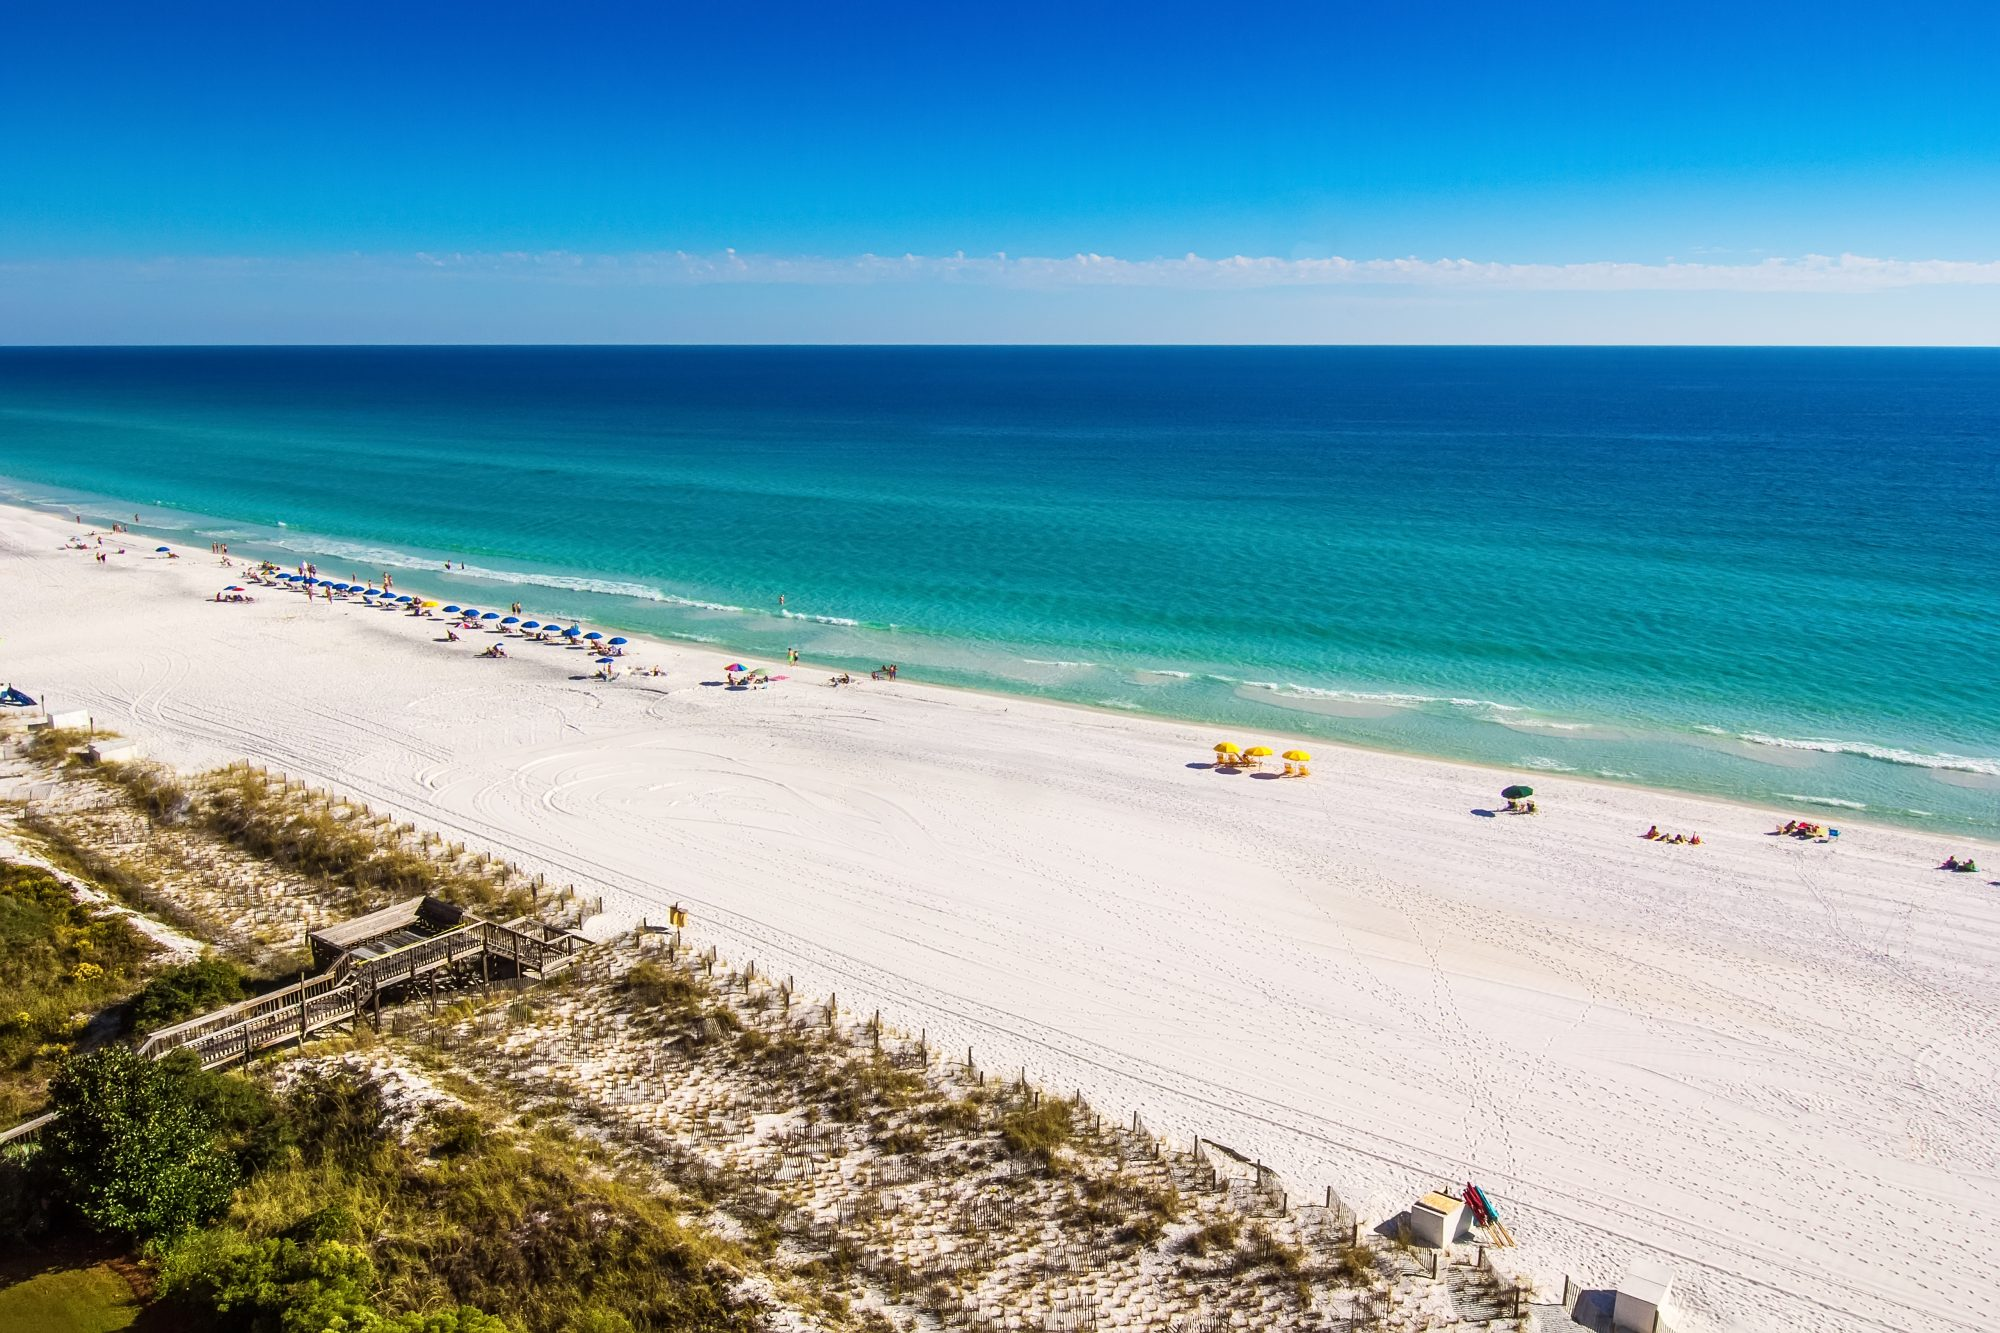 Destin, Florida, USA - Oct. 24, 2014: Beach goers enjoy the white sandy beaches and emerald blue waters of the panhandle in Destin, Florida. Originating as a small fishing village, it is now a popular tourist destination.